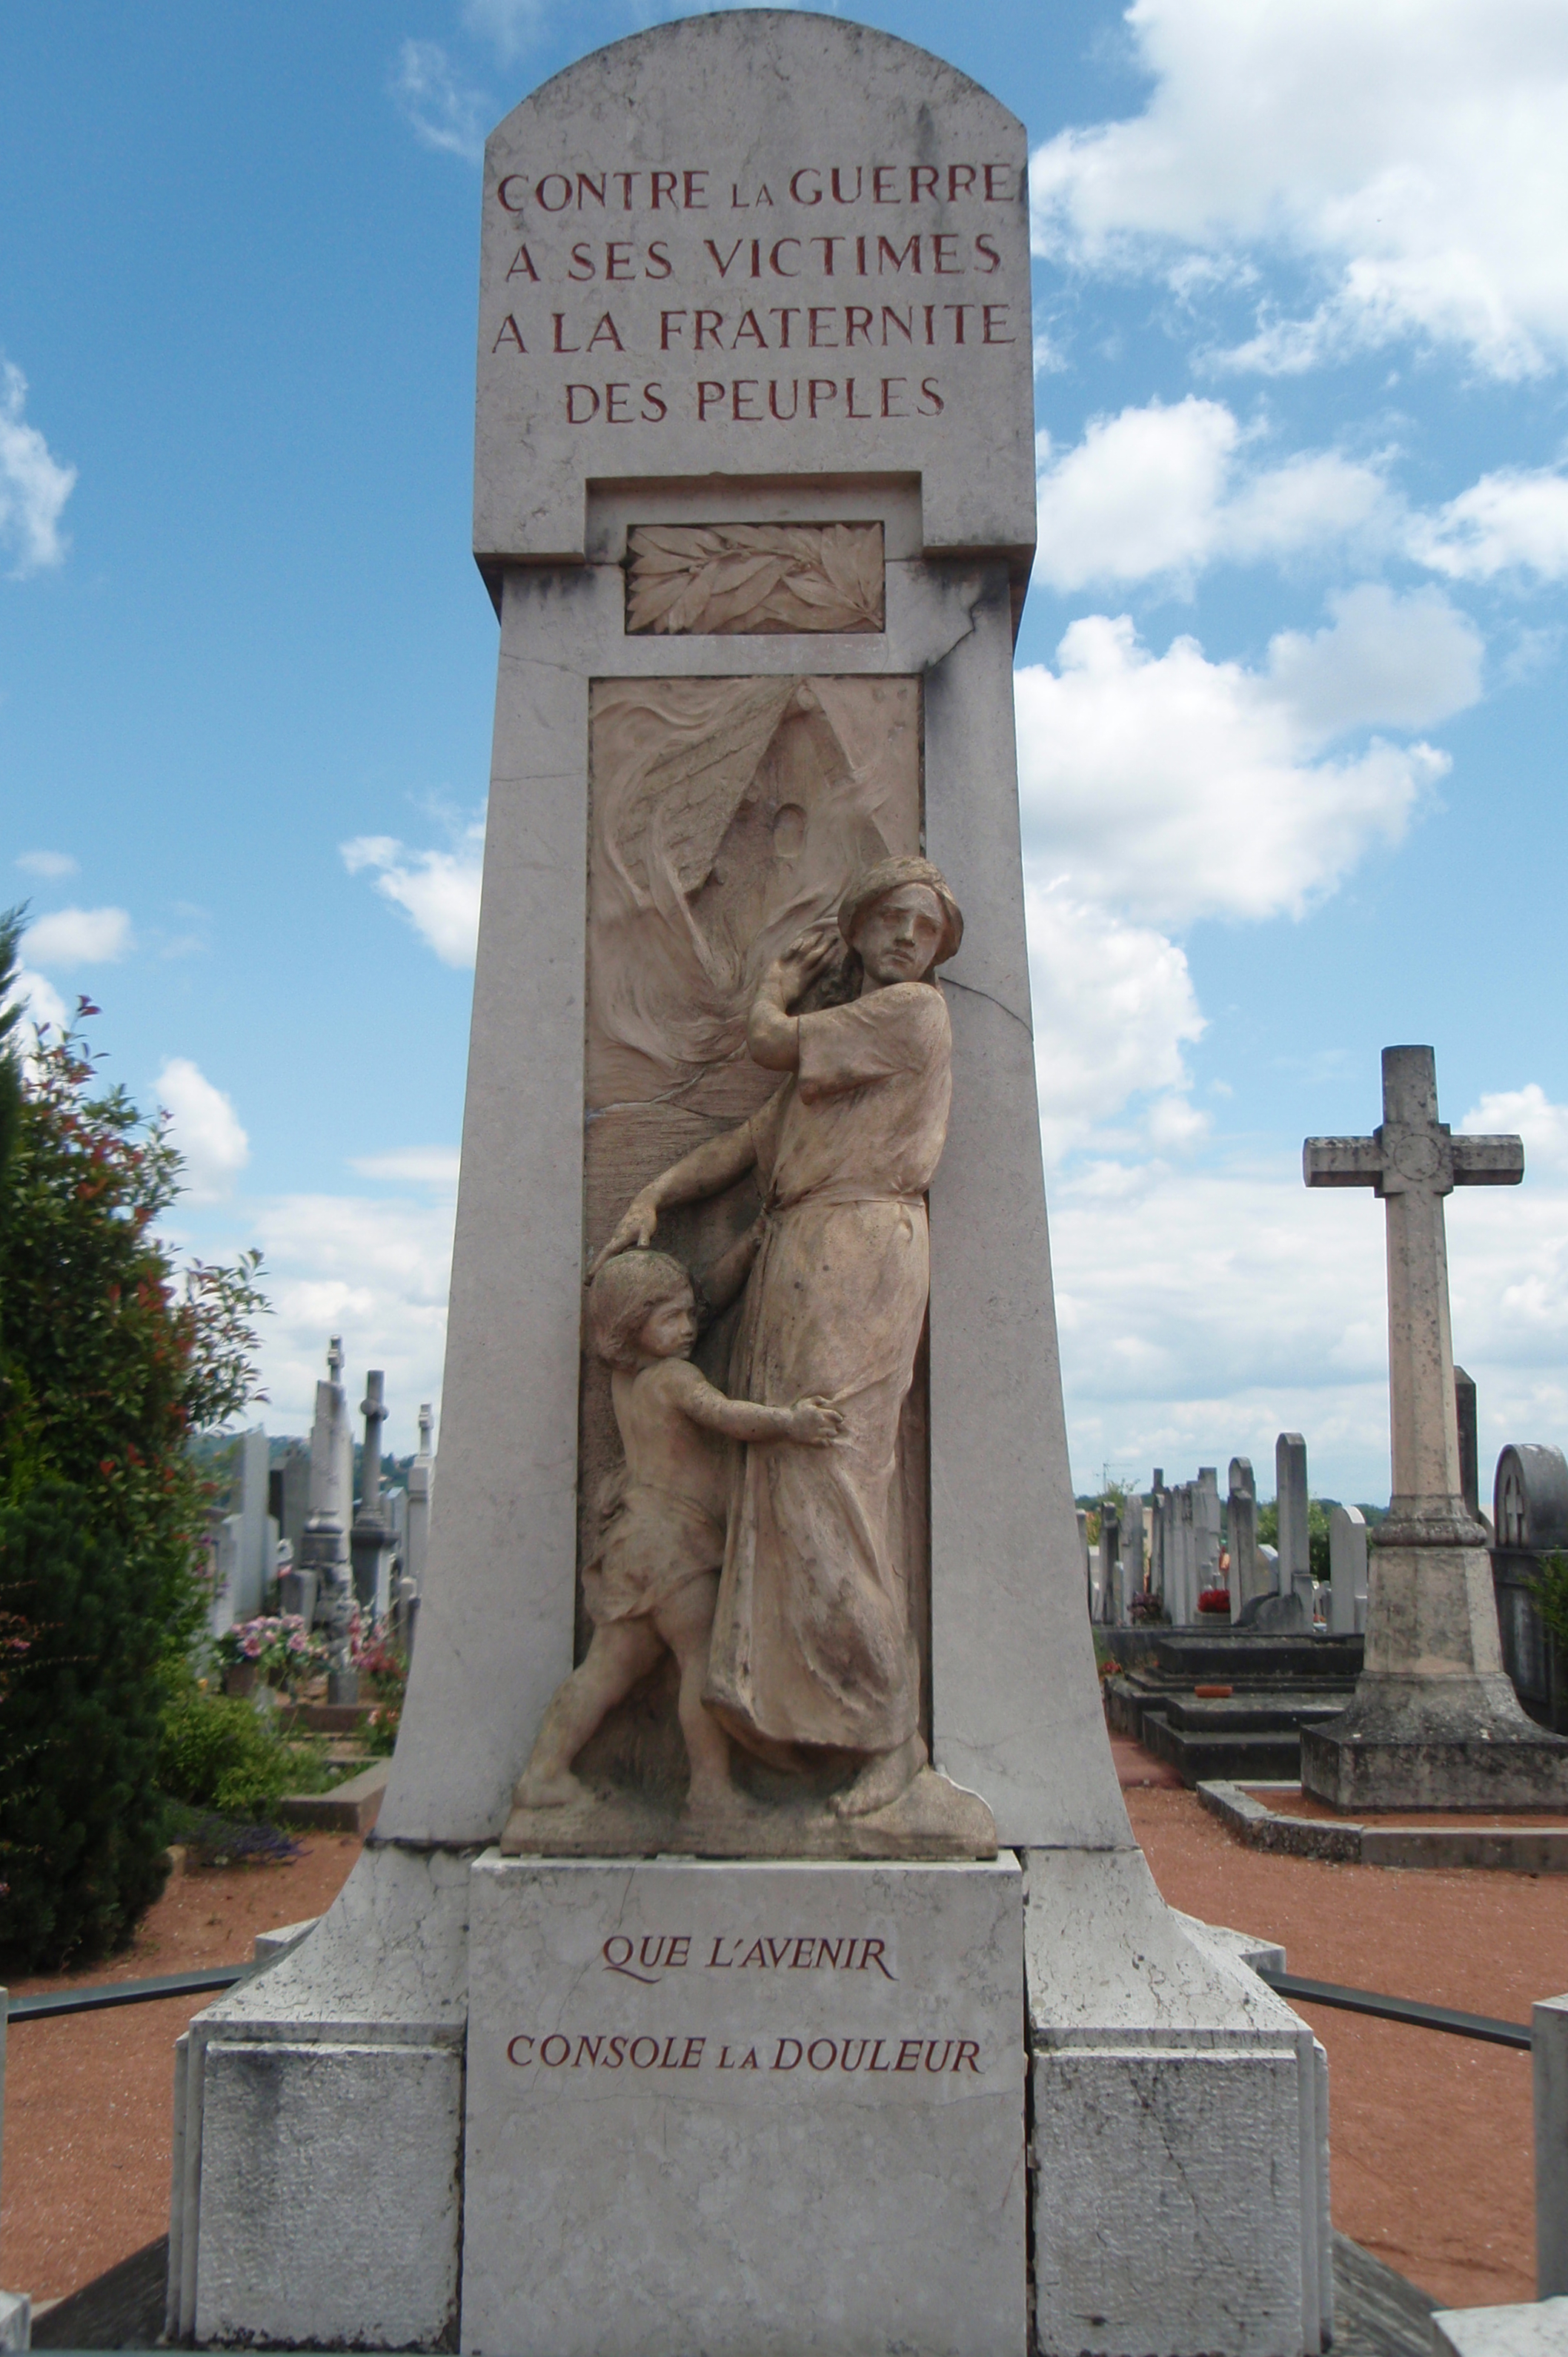 Dardilly France  City pictures : Dardilly, le monument aux morts pacifiste Wikimedia Commons